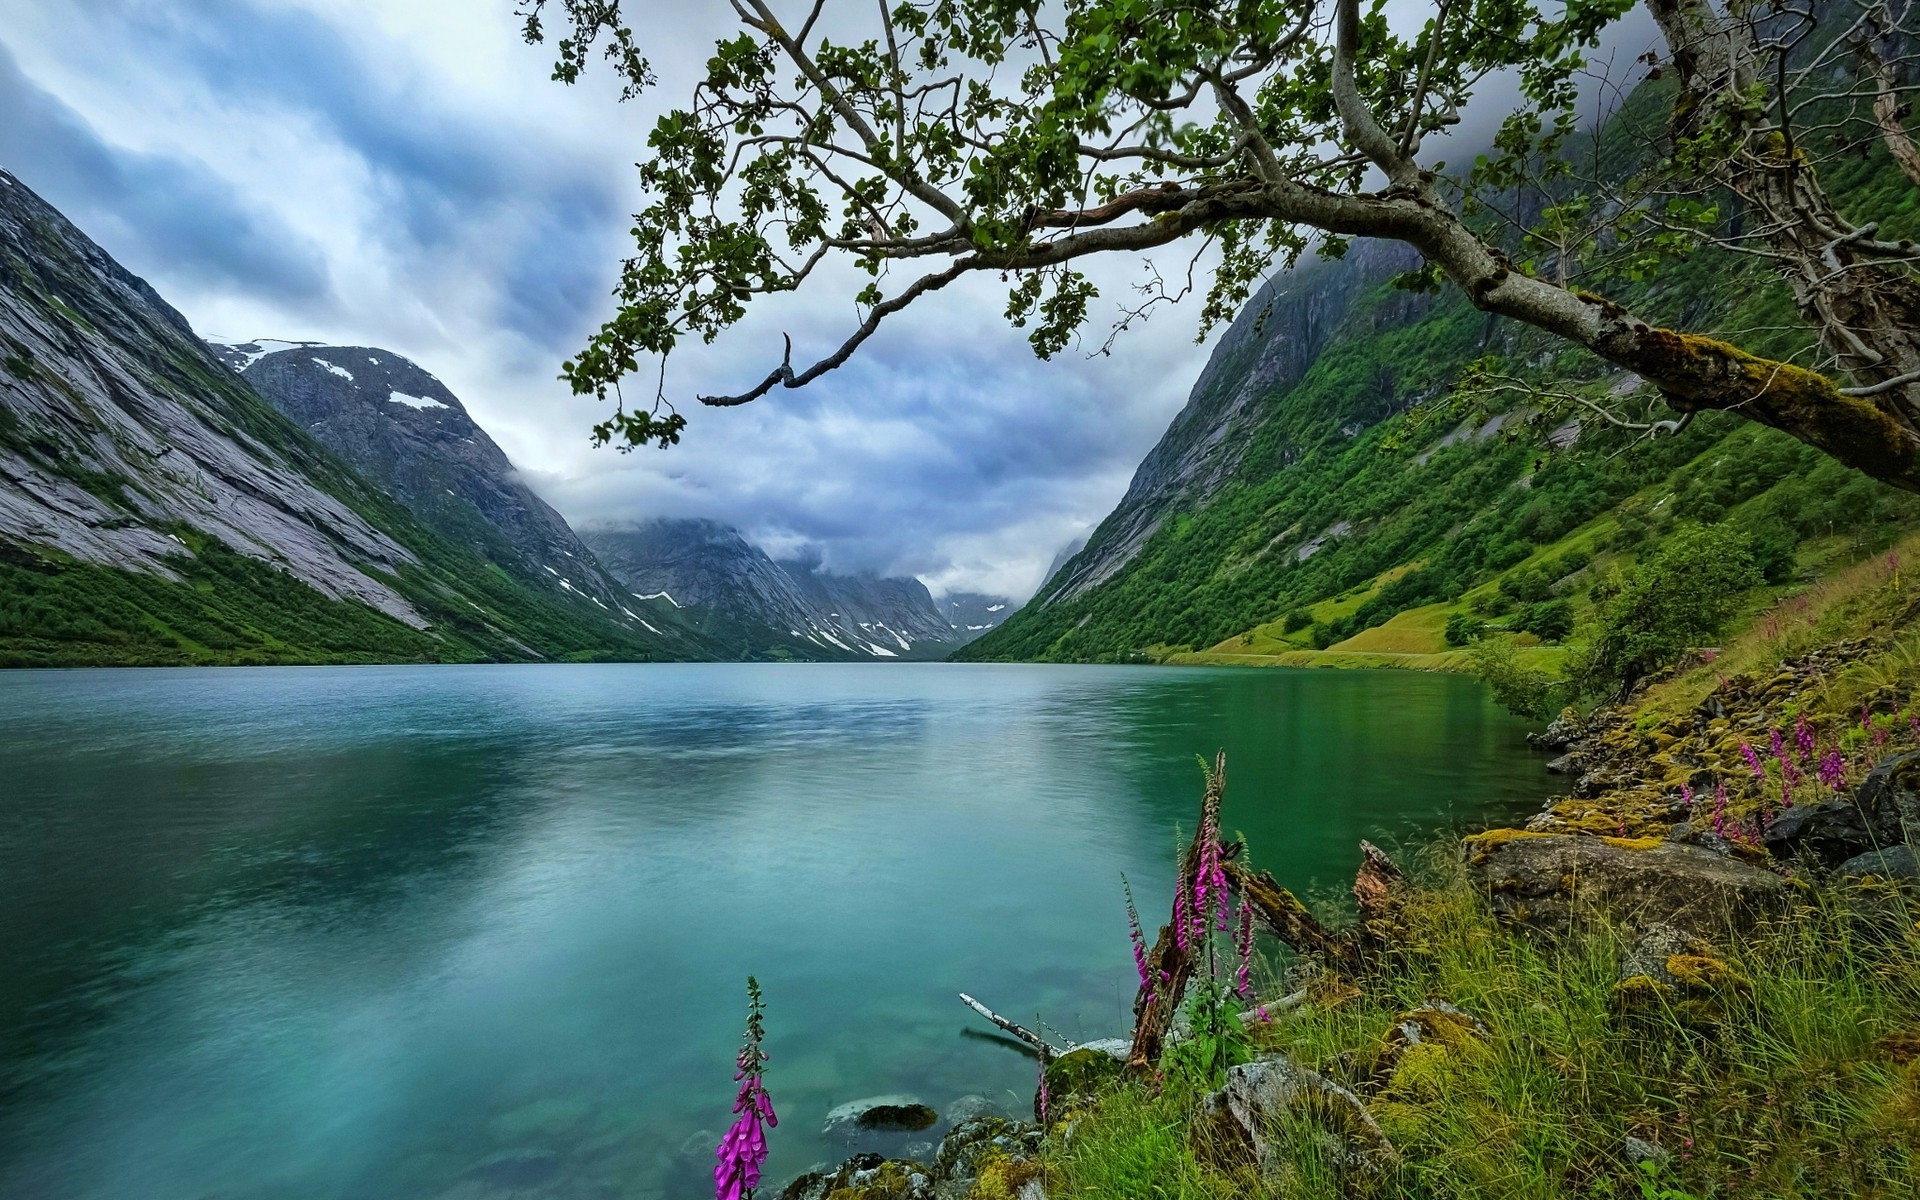 New 3d Desktop Wallpaper Hd 16 Nature Landscape Lake Wildflowers Trees Norway Grass